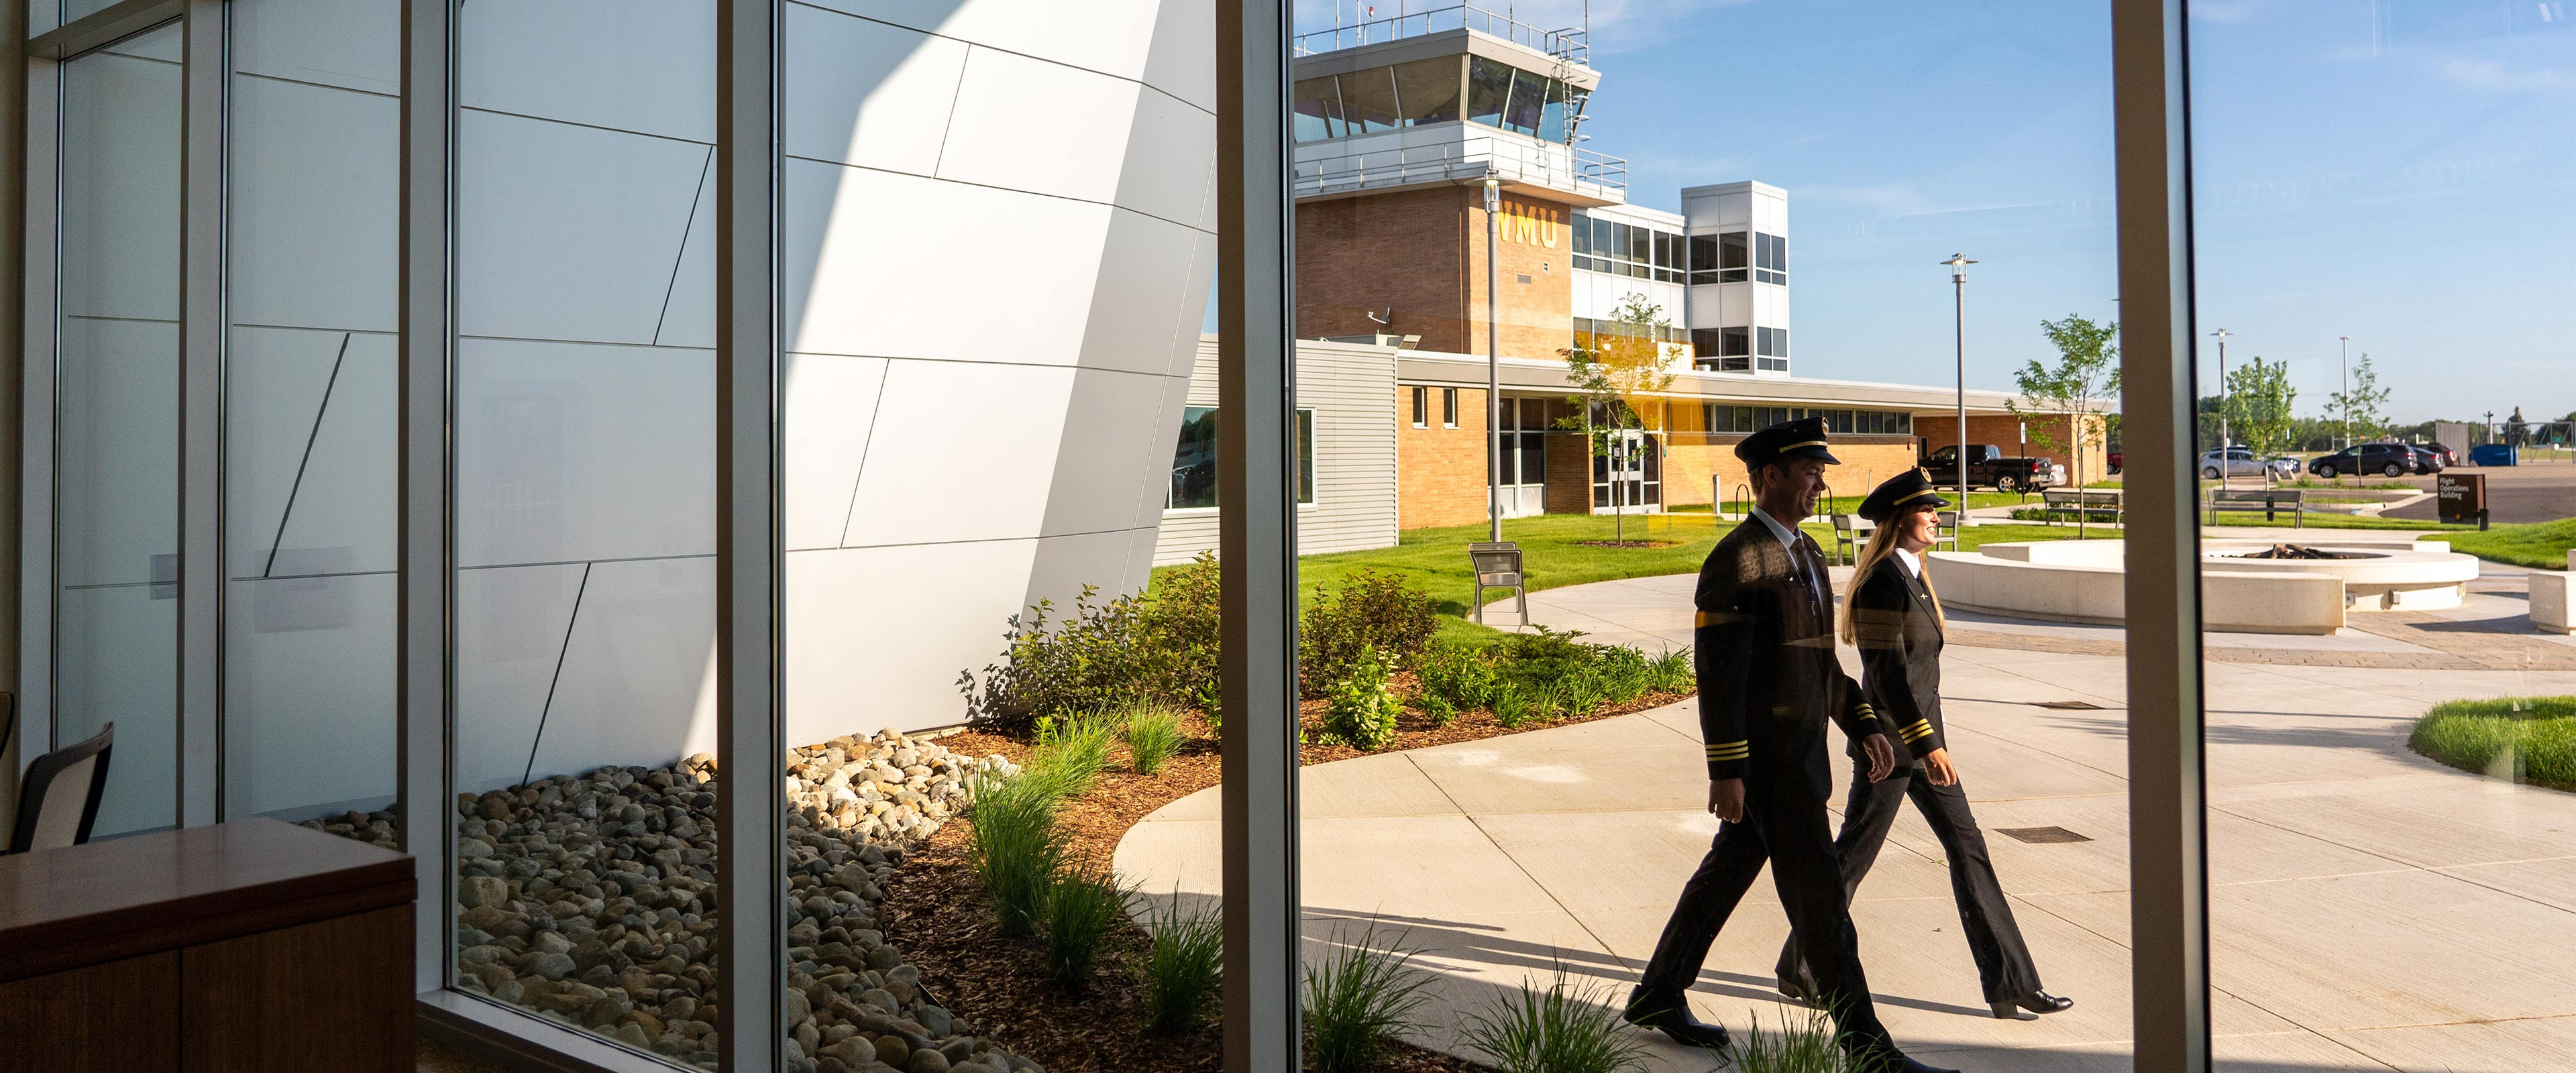 Two pilots walk outside the windows of WMU's Aviation Education Center.